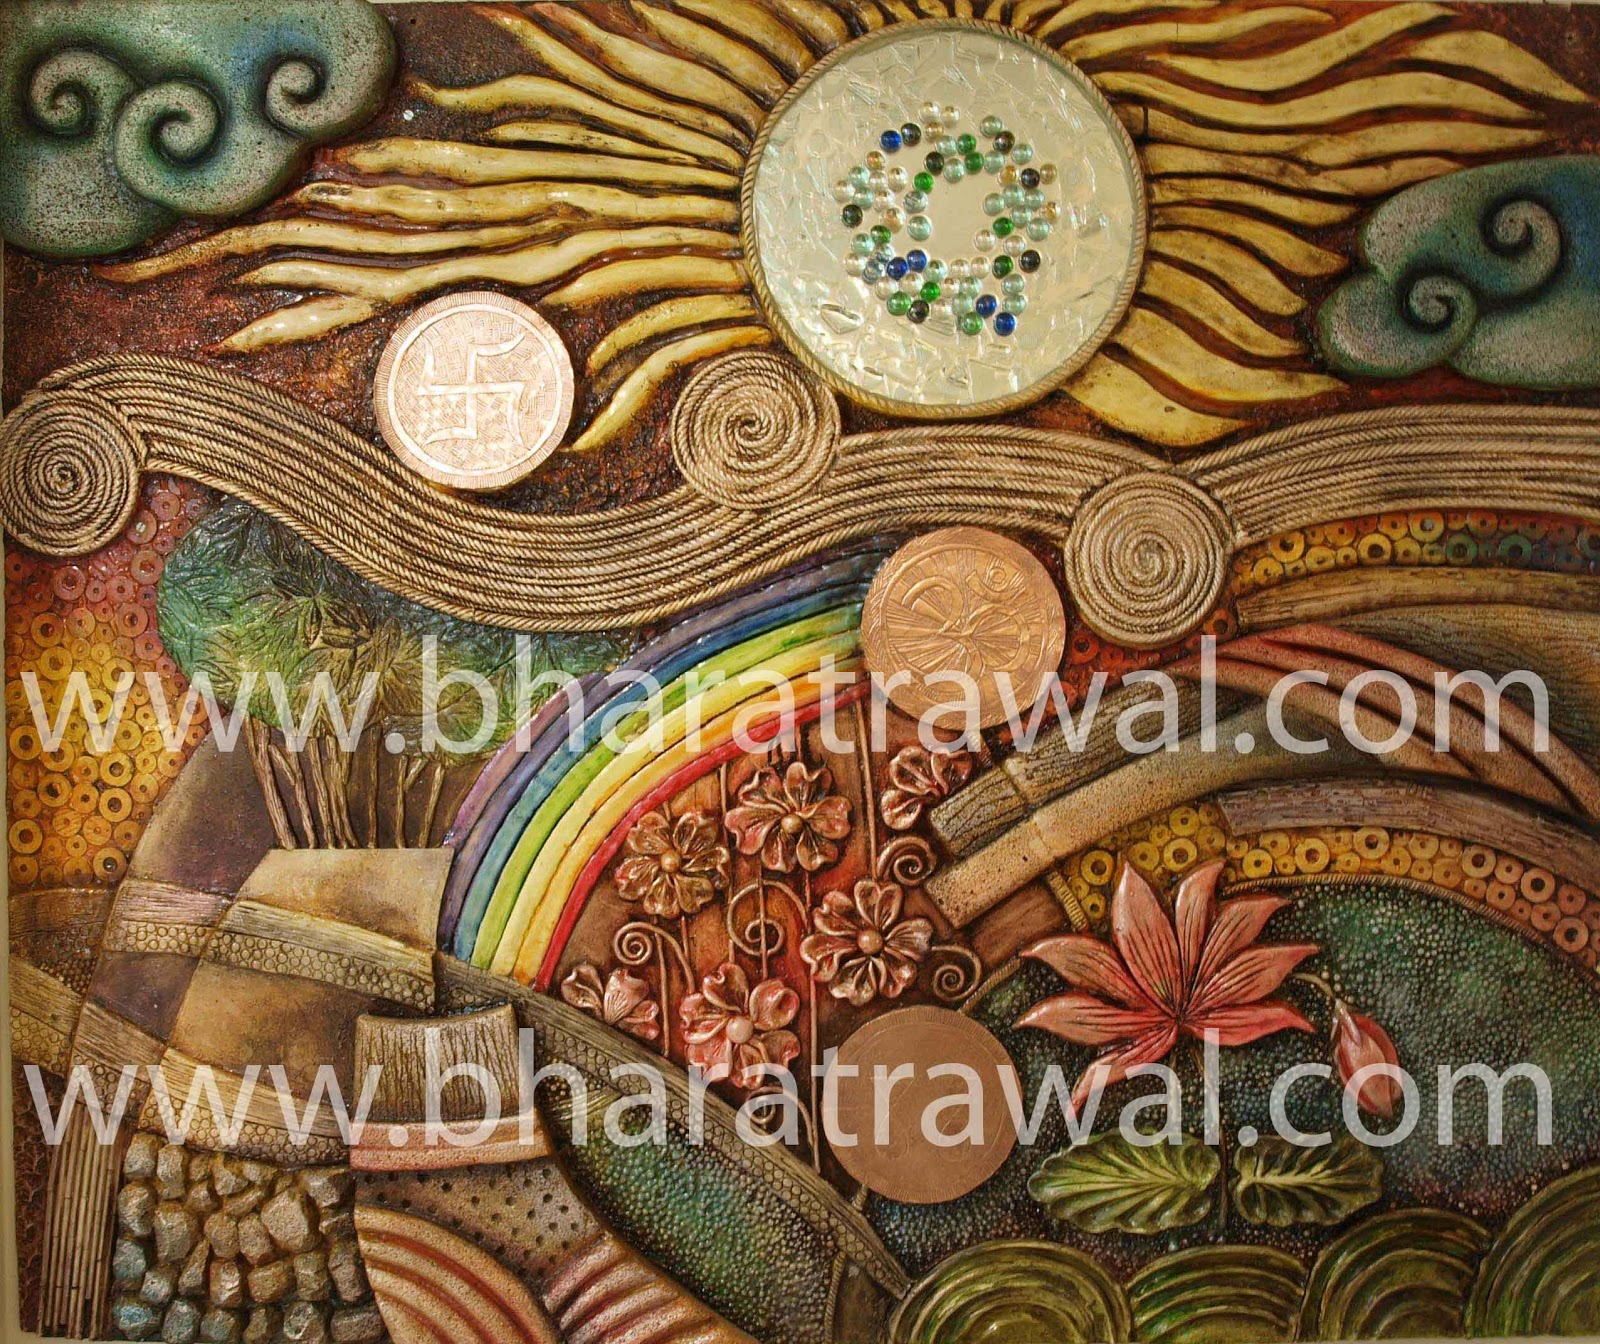 Mural art by muralguru bharat rawal december 2012 for Clay mural designs